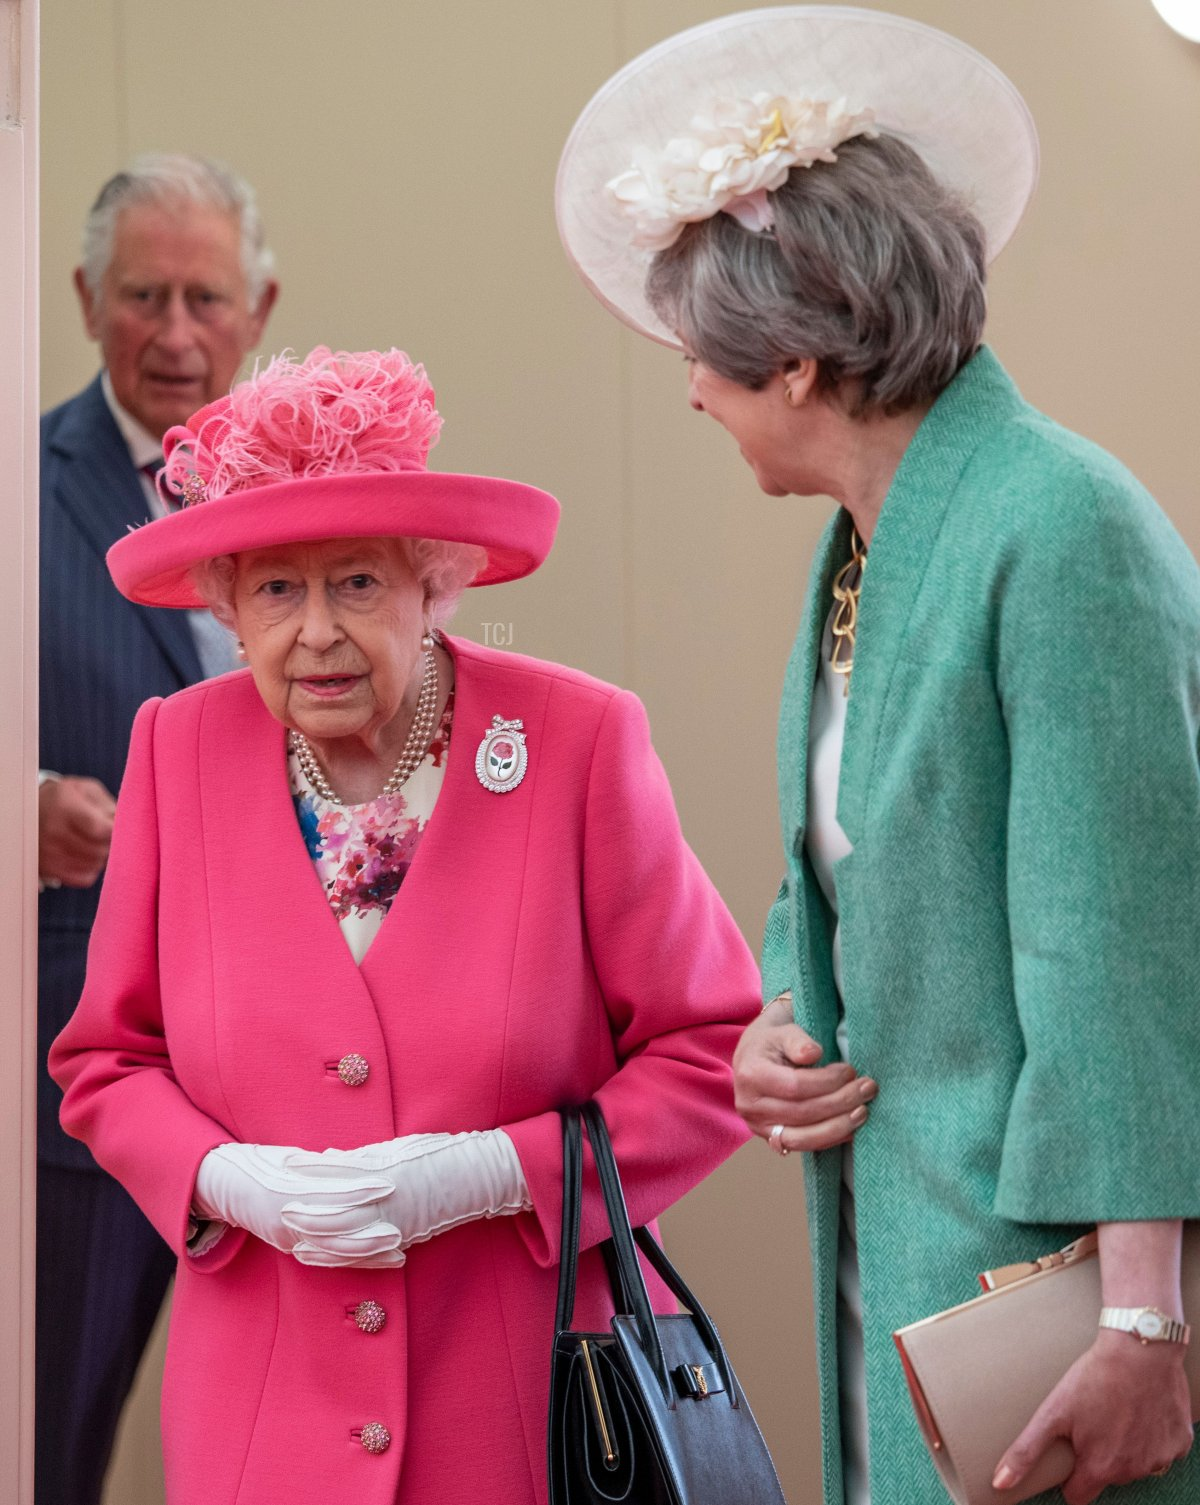 Britain's Queen Elizabeth II (C) talks with Britain's Prime Minister Theresa May (R) followed by Britain's Prince Charles, Prince of Wales (L) as they attend an event to commemorate the 75th anniversary of the D-Day landings, in Portsmouth, southern England, on June 5, 2019